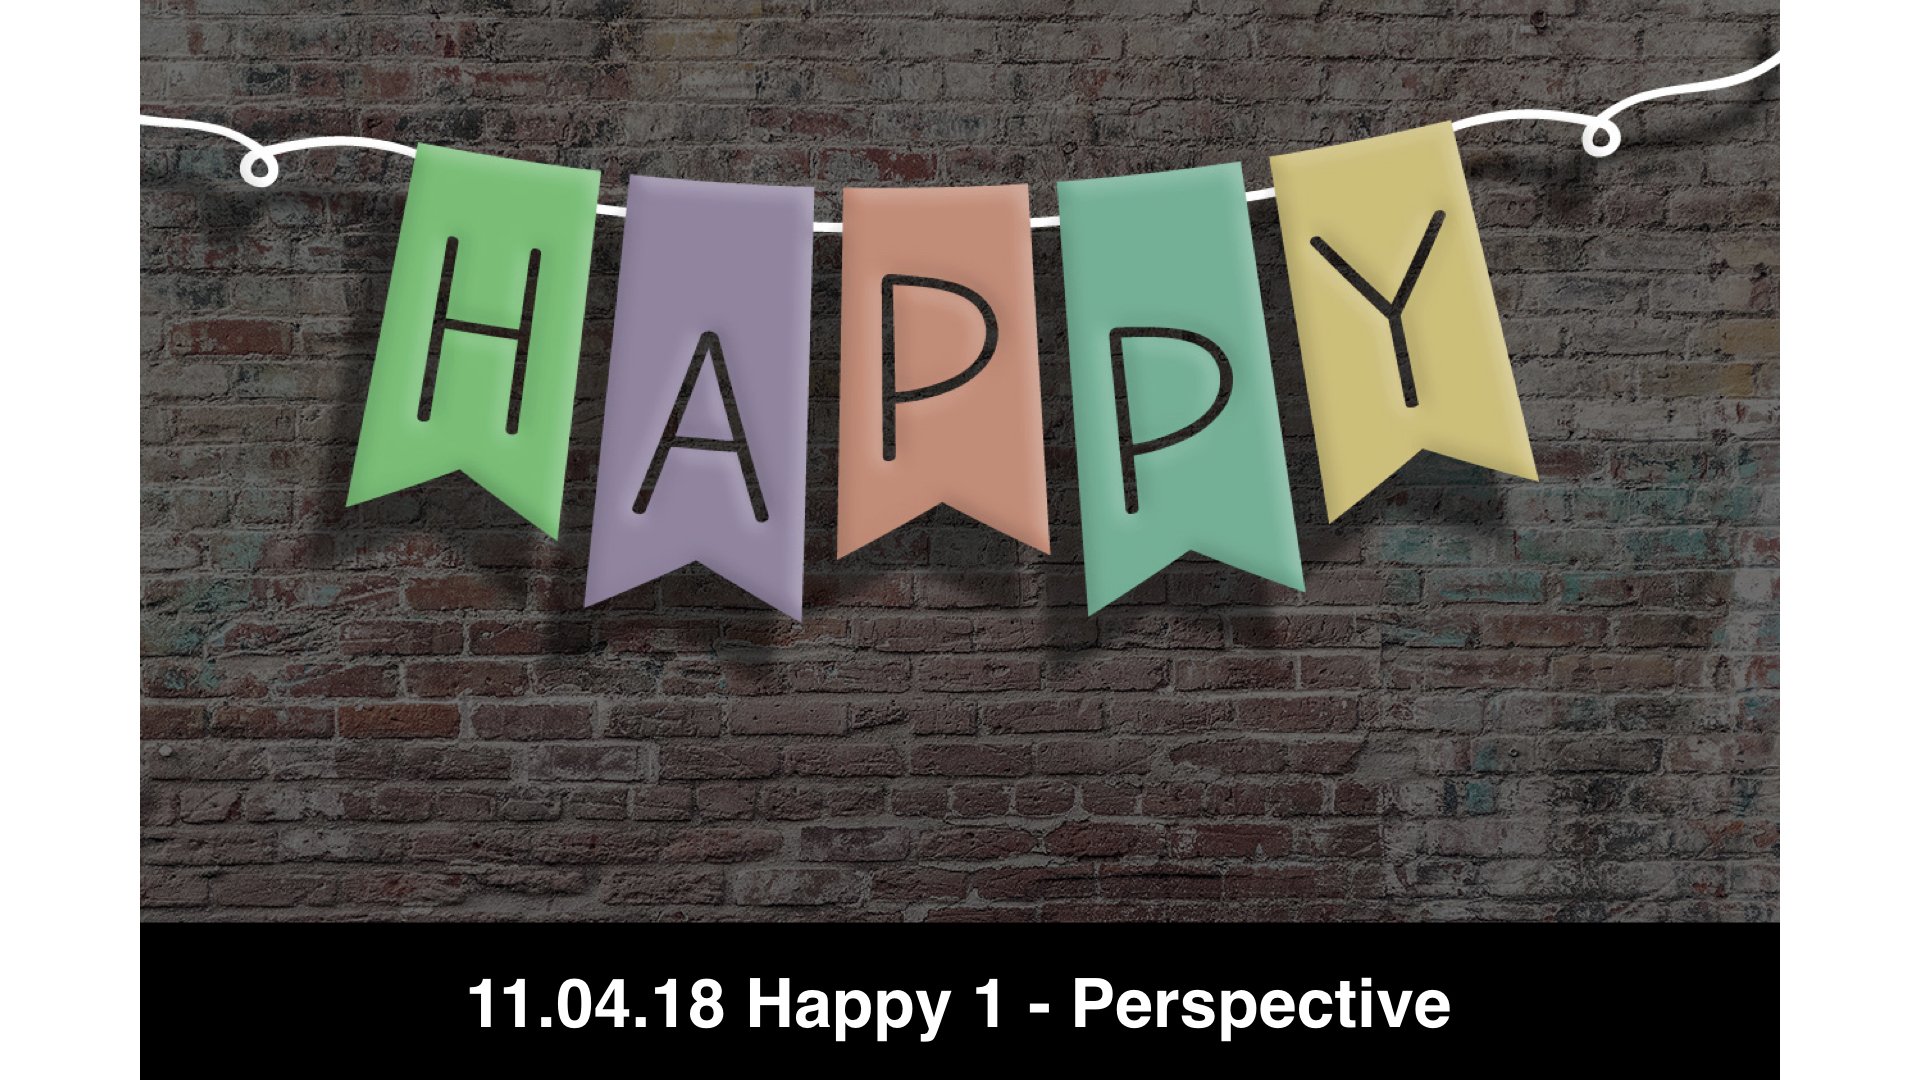 11.04.18 Happy 1 - Perspective